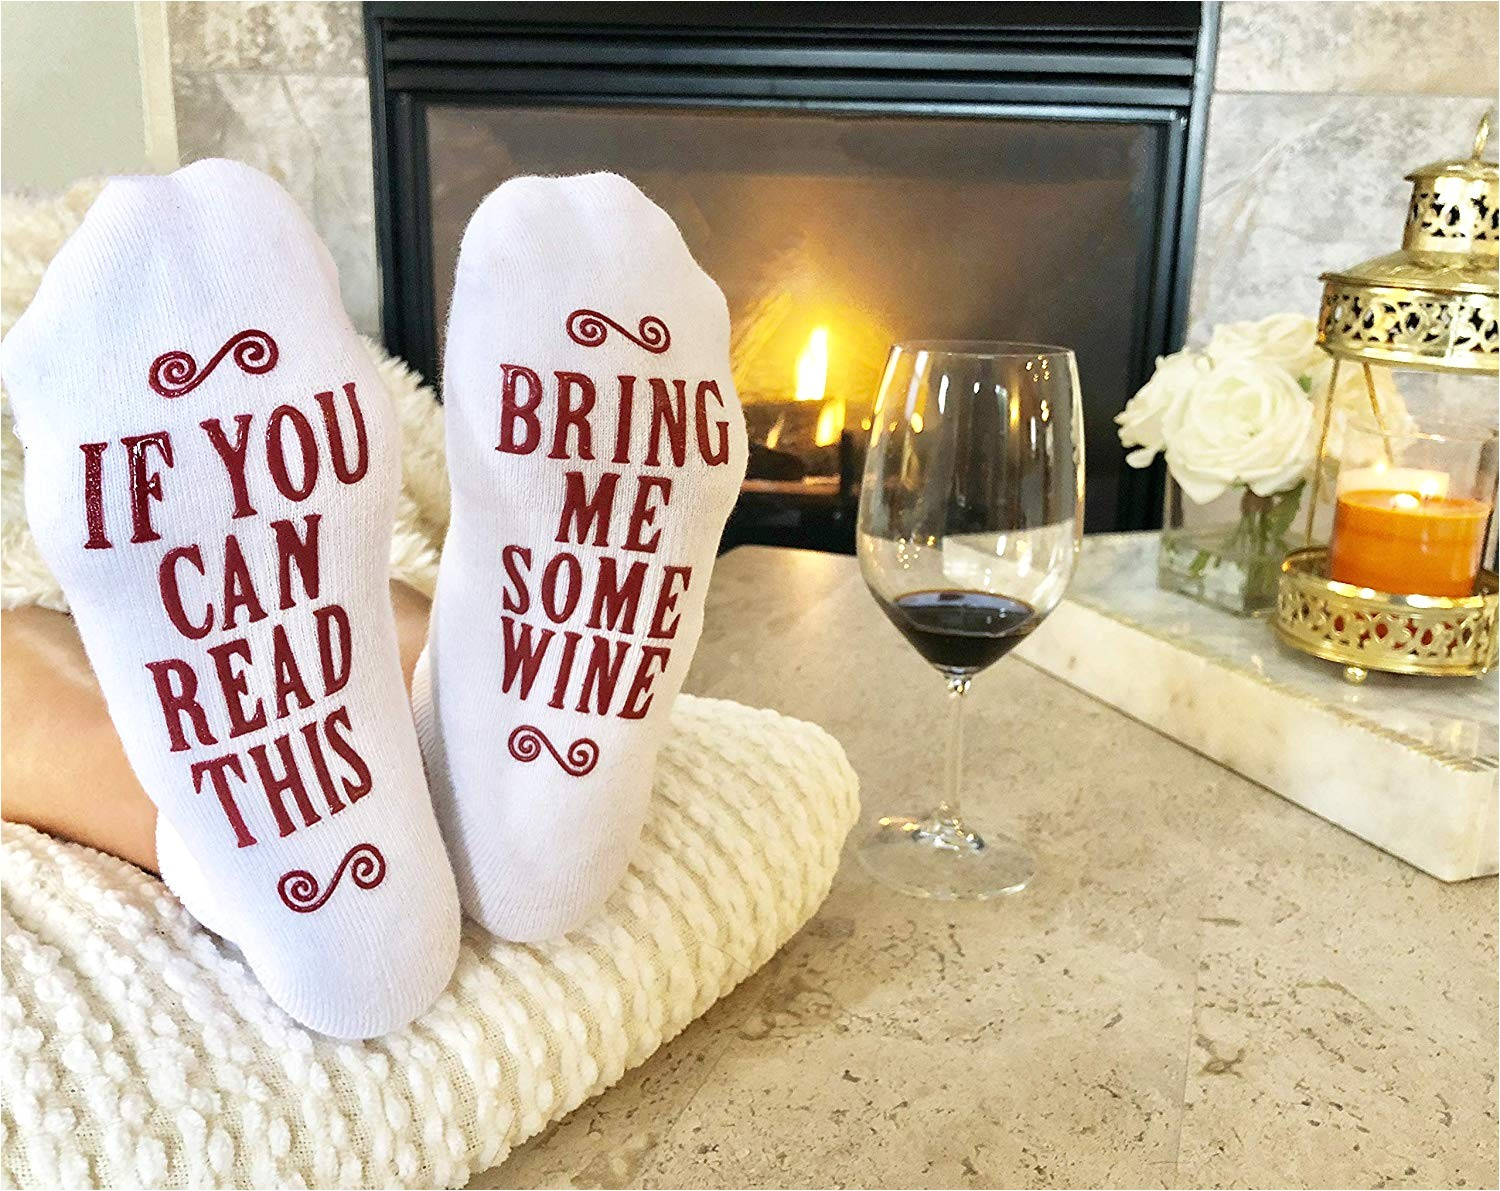 amazon com bring me some wine luxury combed cotton socks with gift box perfect hostess or holiday gift idea for women cute christmas gift idea for